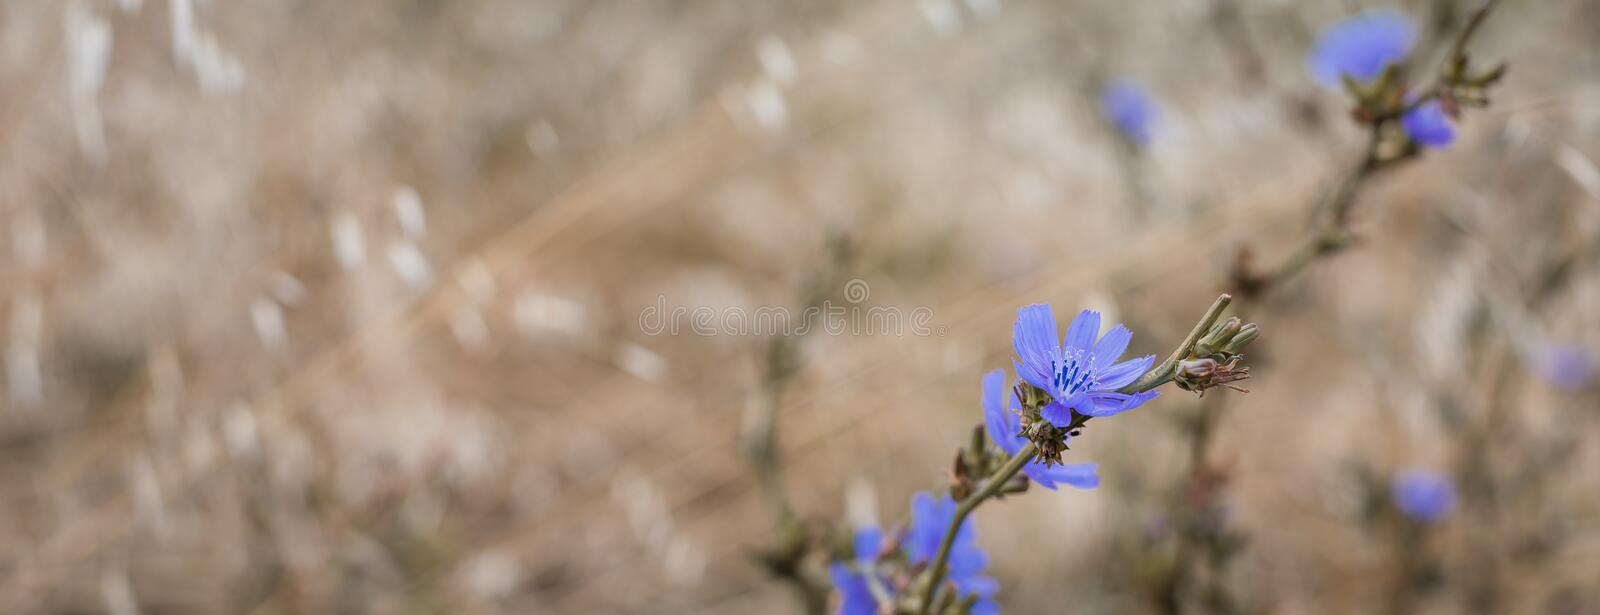 Wild cornflowers on the oats field, banner, selective focus. Toned royalty free stock photography